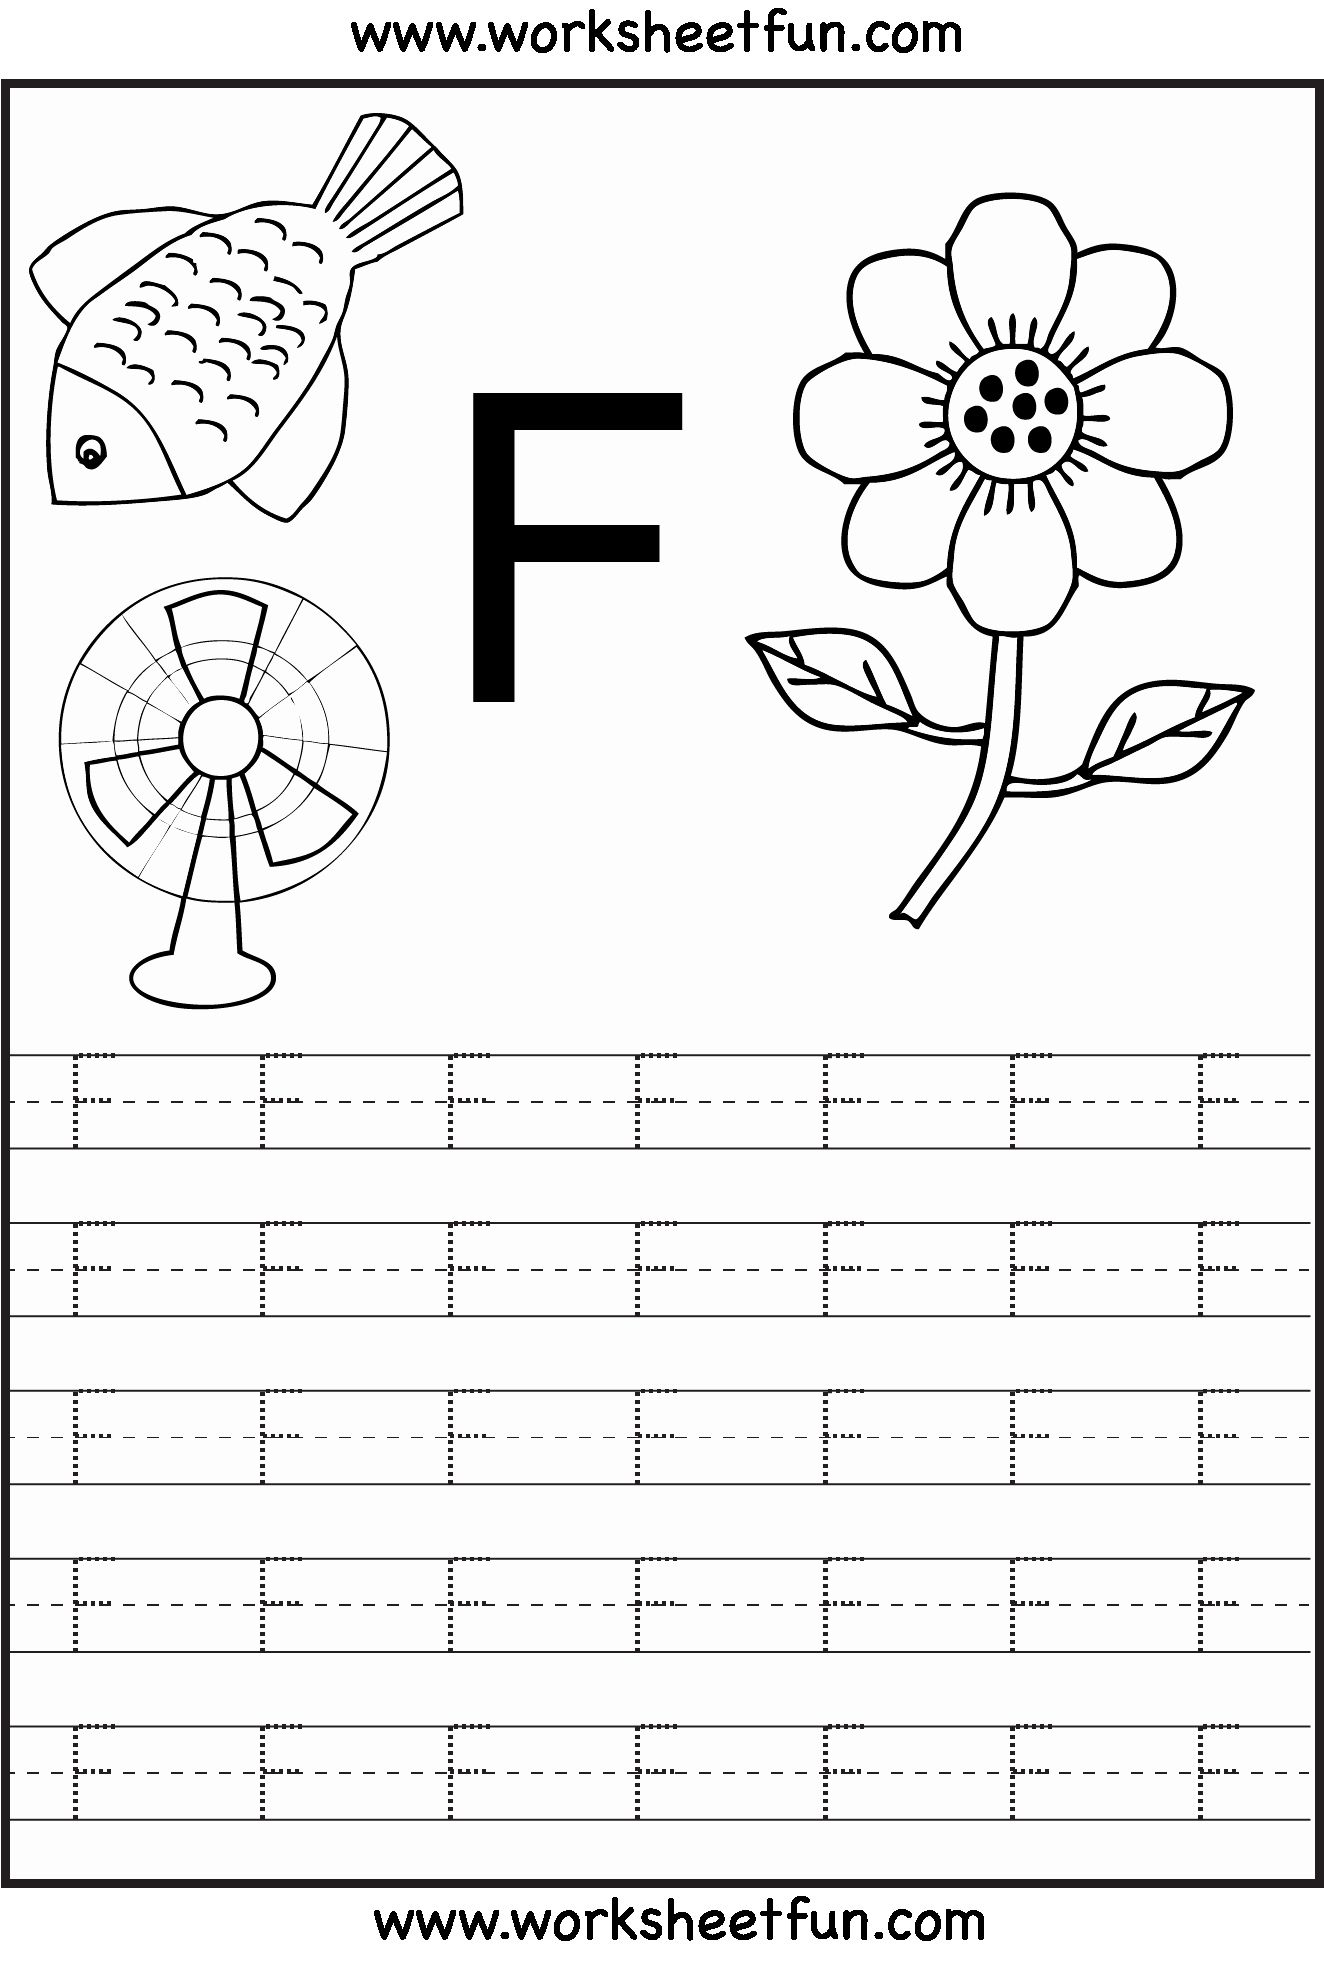 Coloring Pages Of Cursive Letters In 2020 With Images Alphabet Writing Worksheets Letter Tracing Worksheets Writing Worksheets